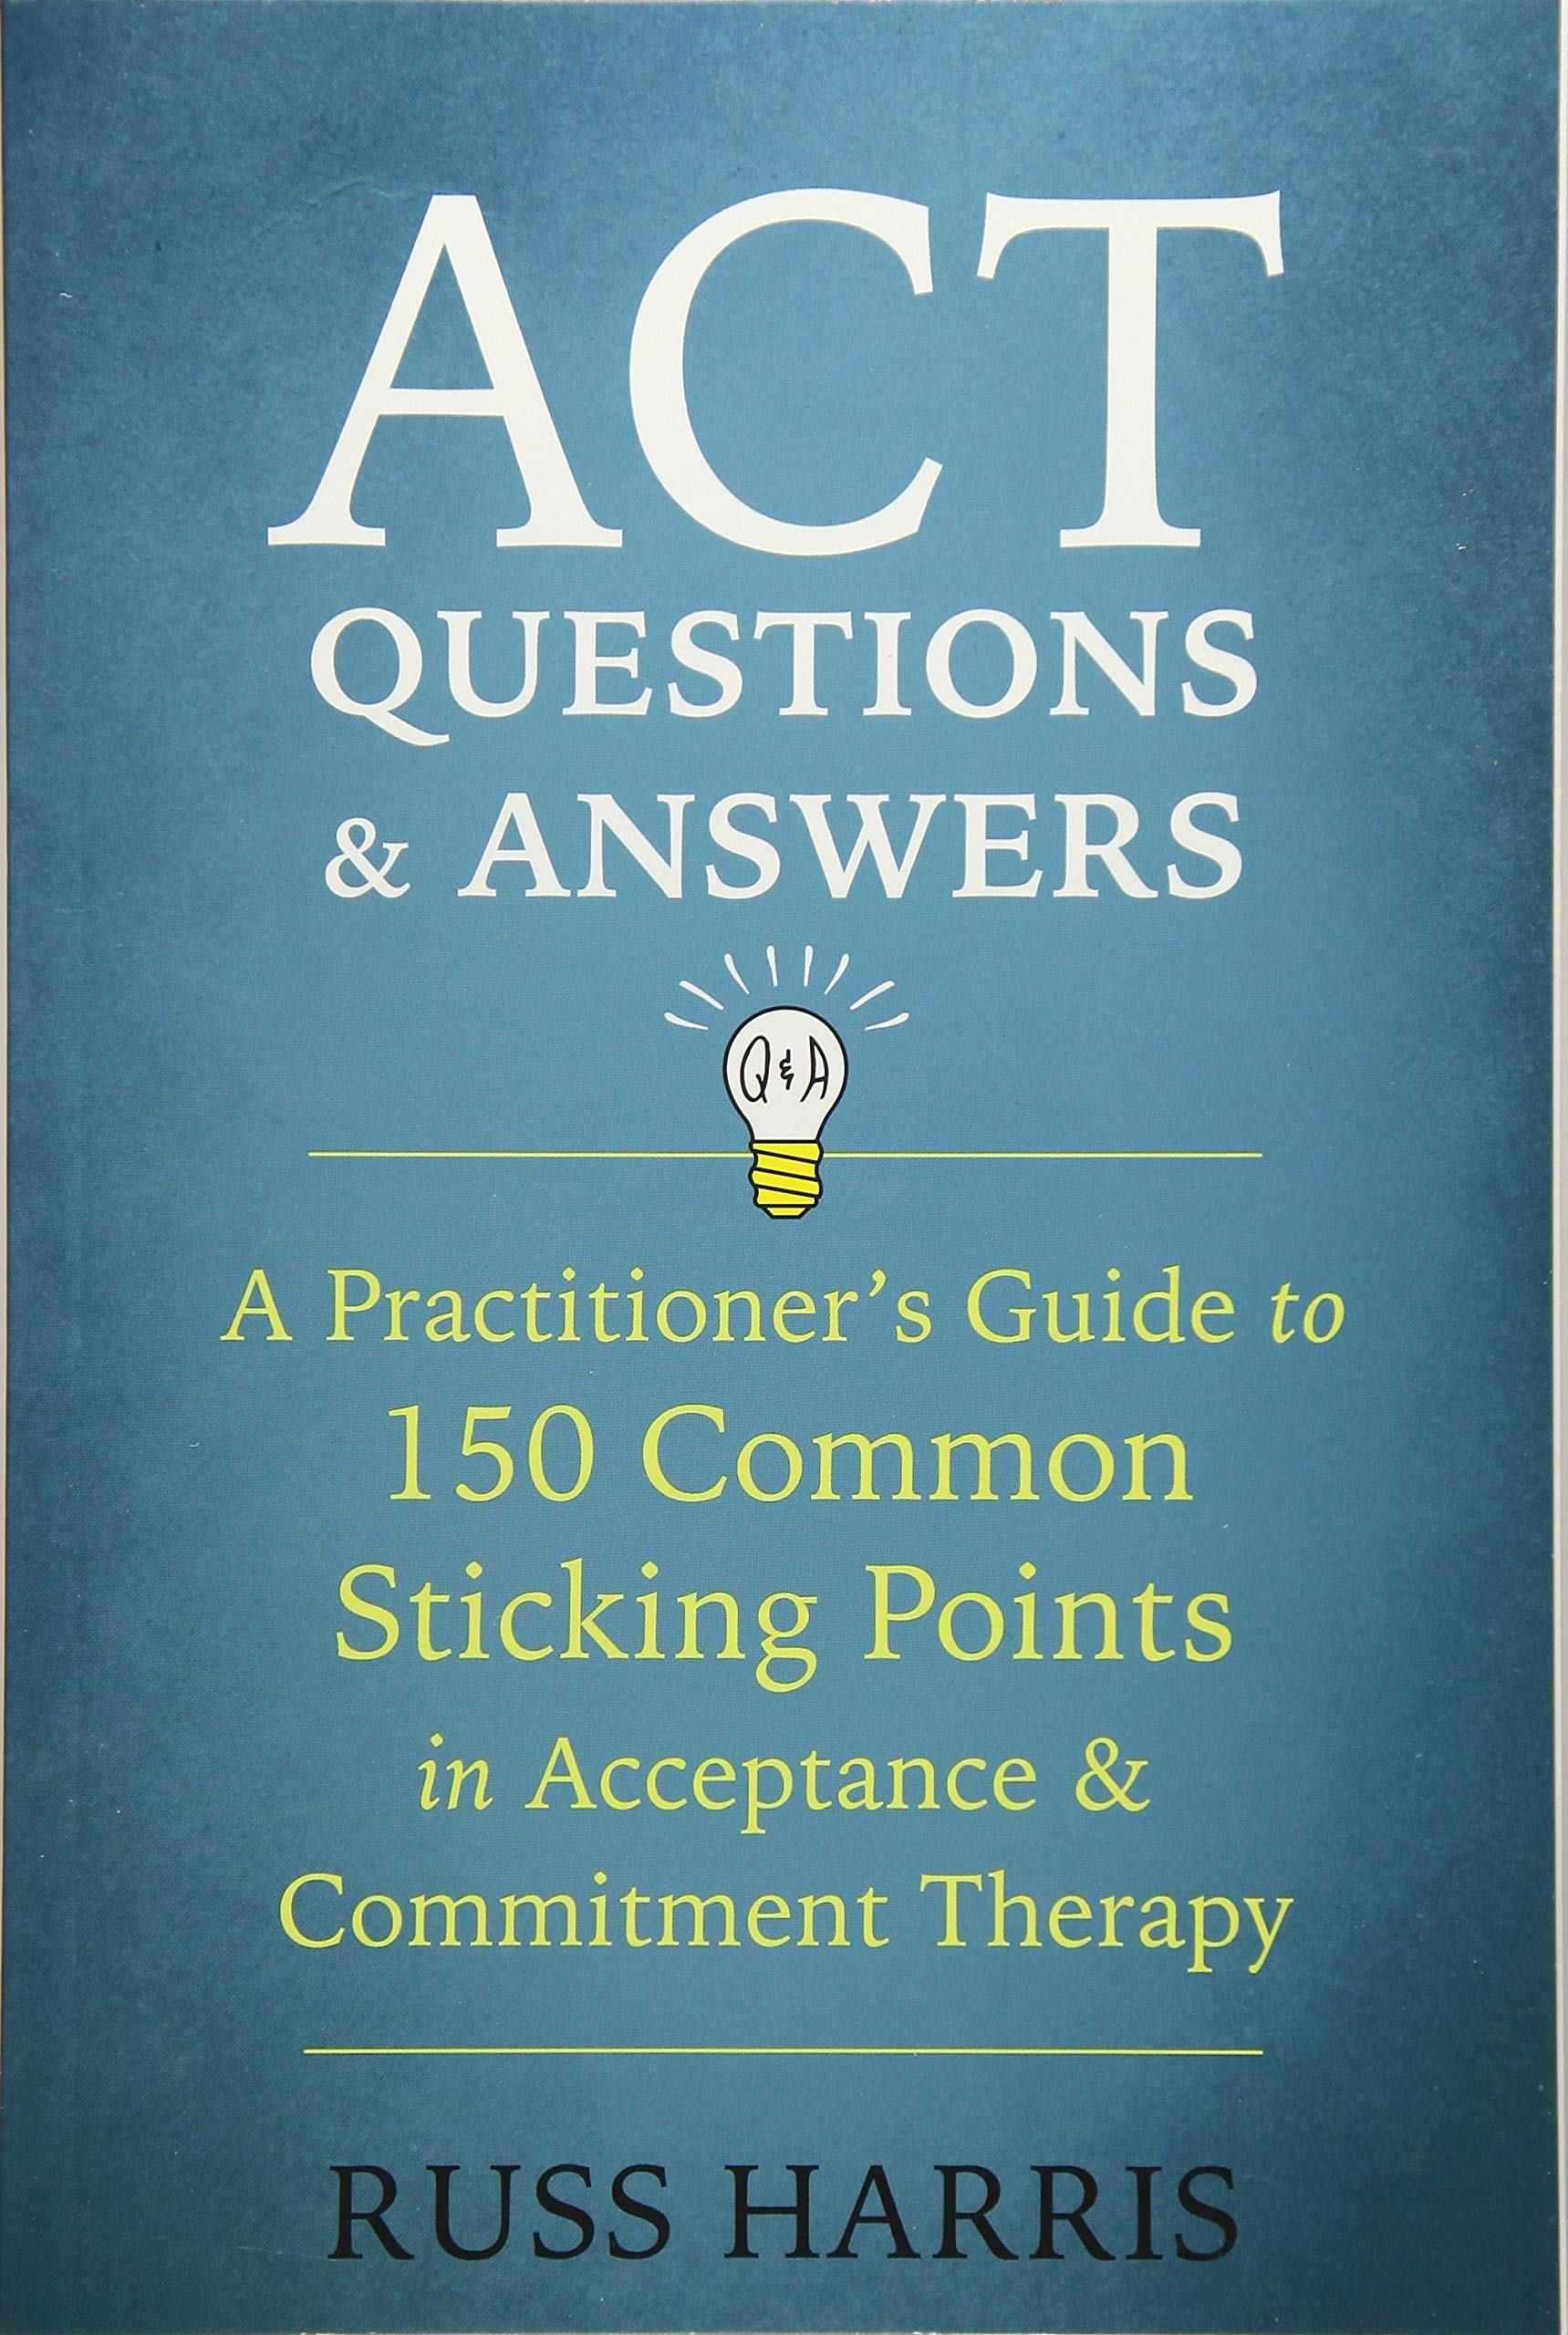 Amazon.com: ACT Questions and Answers: A Practitioner's Guide to 150 Common  Sticking Points in Acceptance and Commitment Therapy (9781684030361): Russ  ...